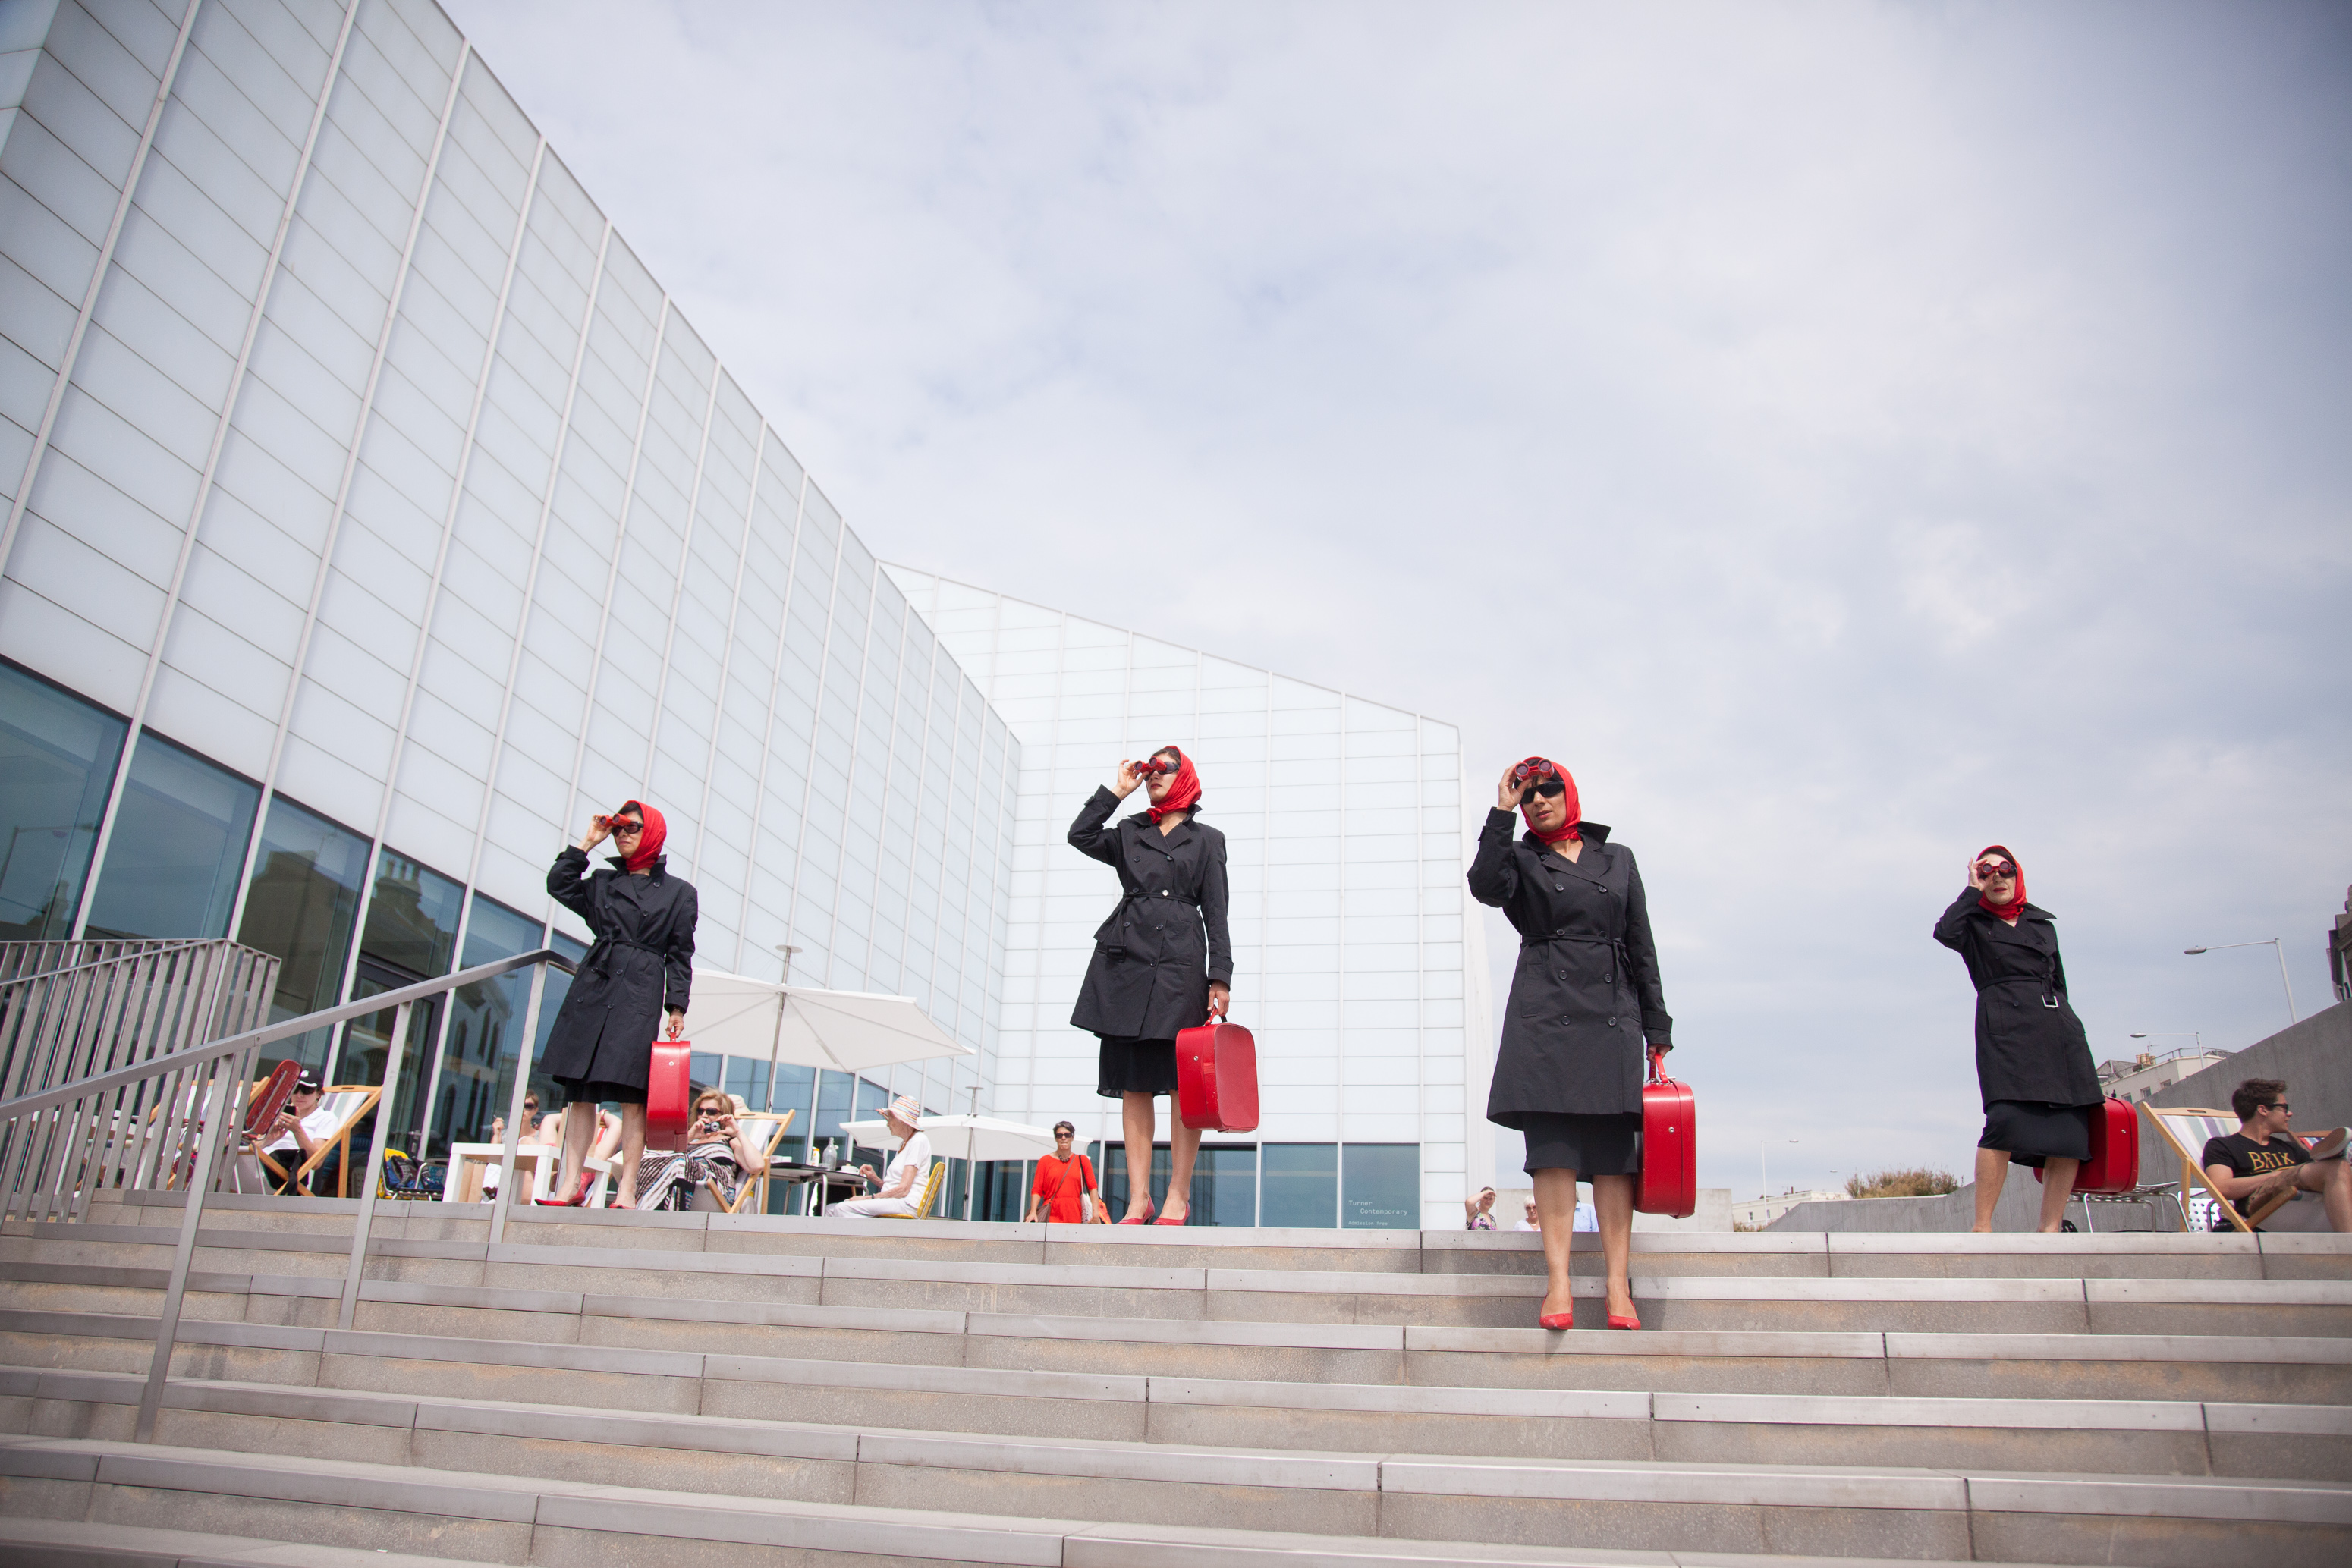 Four women stand on steps outside looking through binoculars, all dressed in the same red head shawl, sunglasses, black coats, black skirts, red heels and carrying red suitcases.